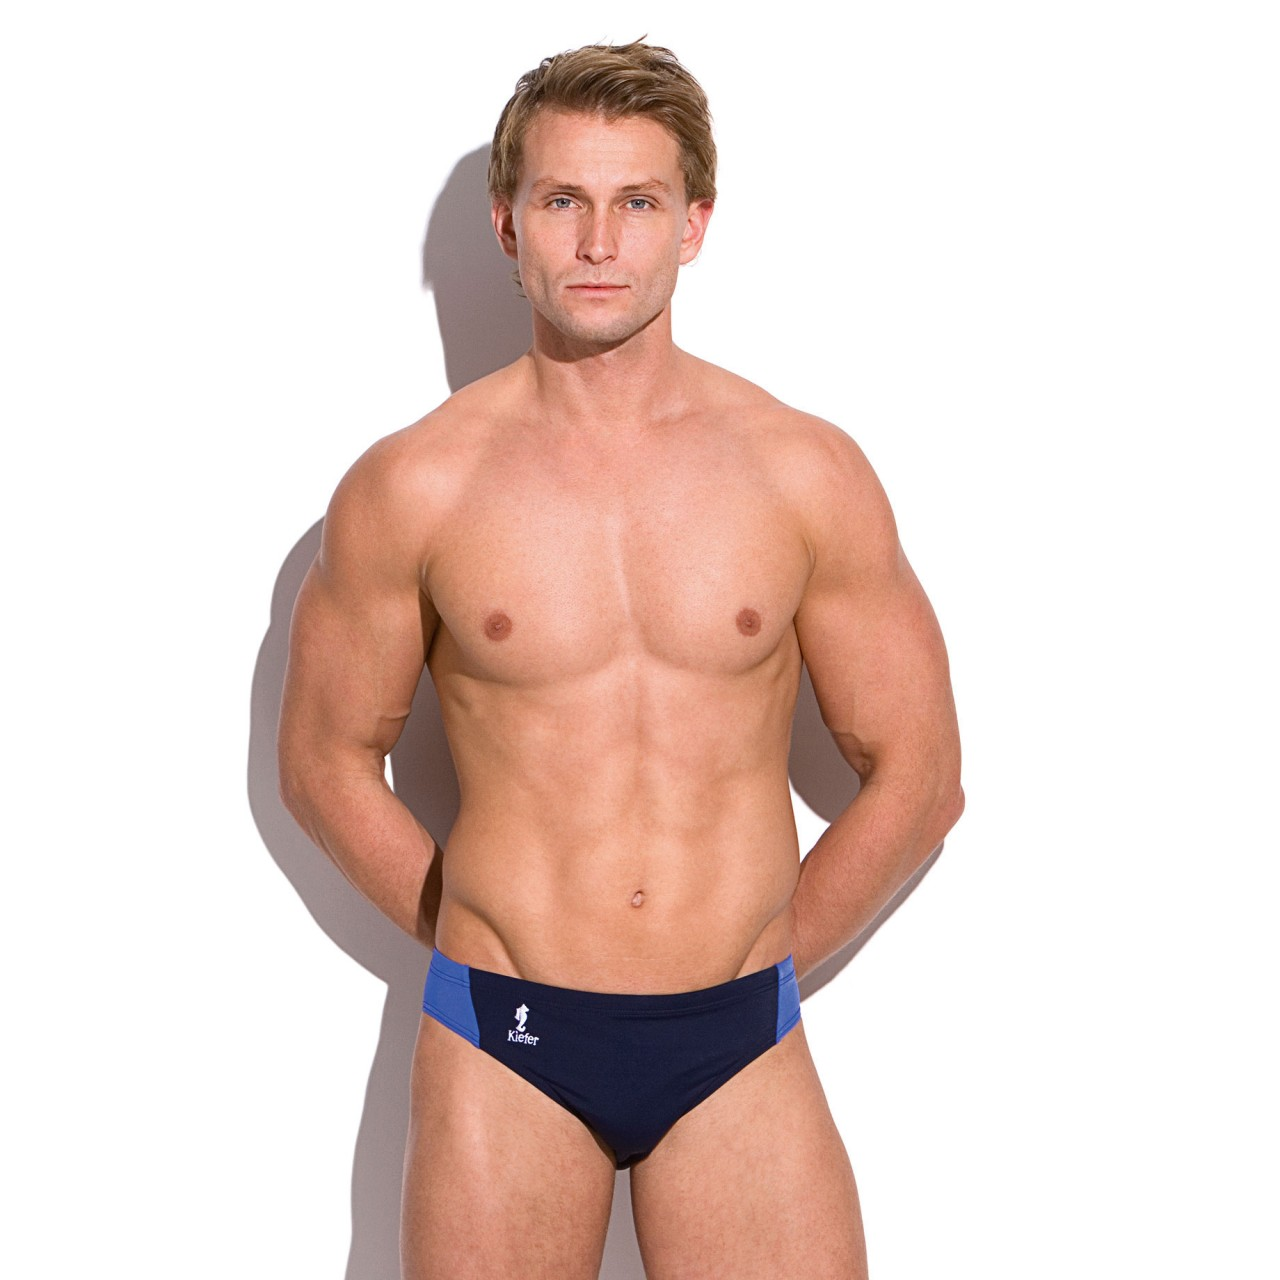 Browse swim trunks for men at Lands' End to find the latest and best in men's swimsuits and swimwear for men. Check out swimsuits for men at Land's End!